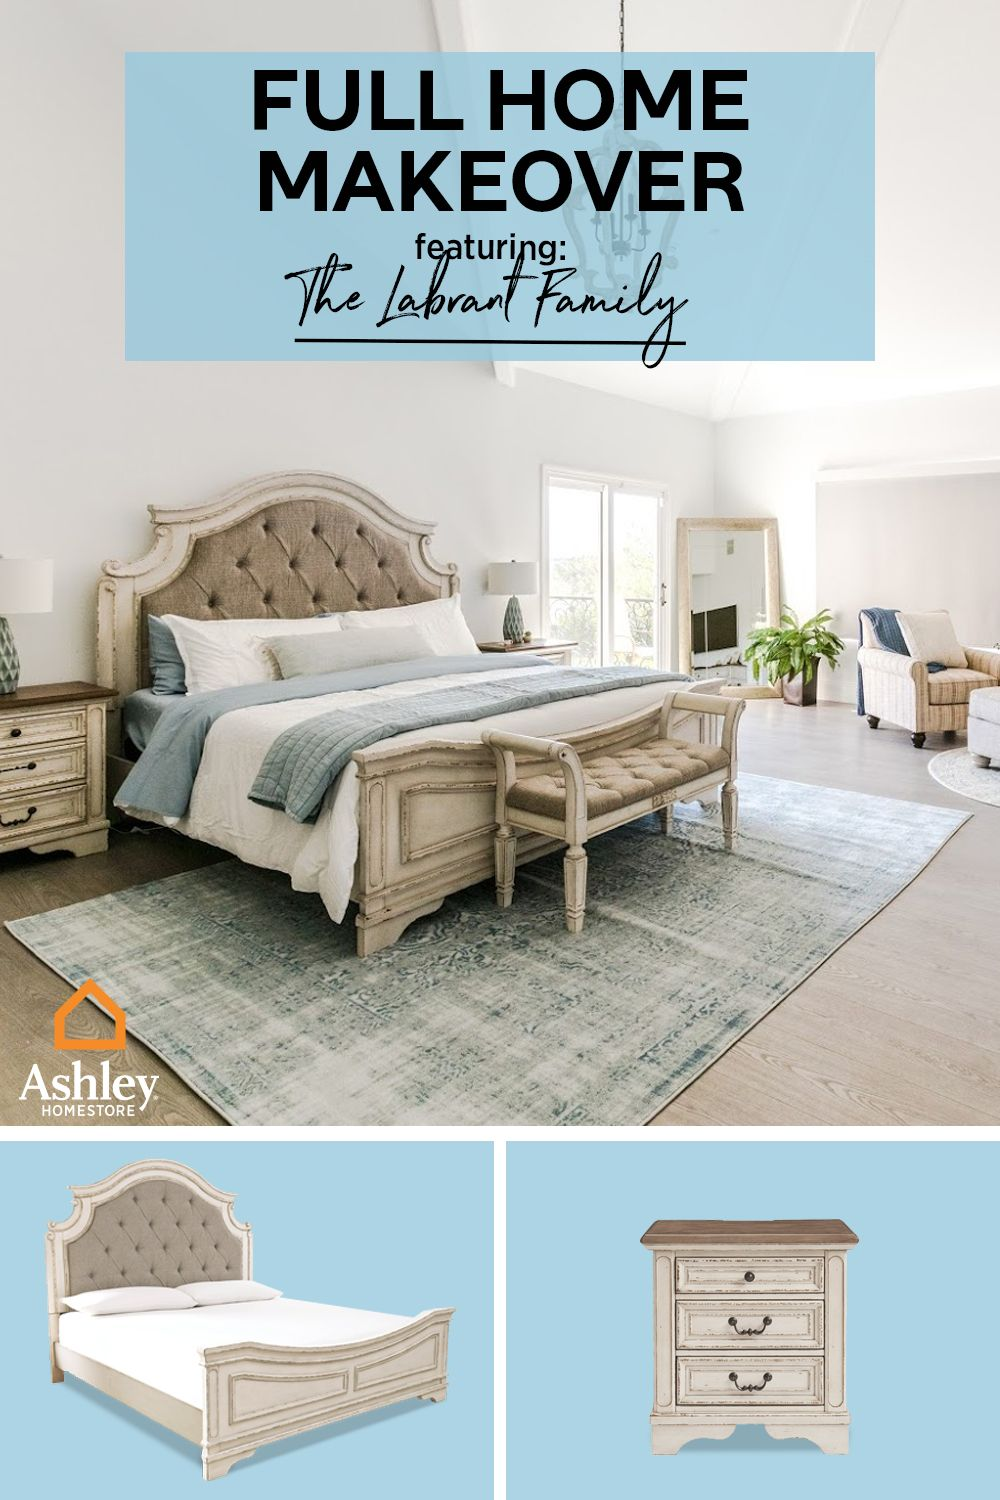 We'll take our breakfast in this bed! Creating a